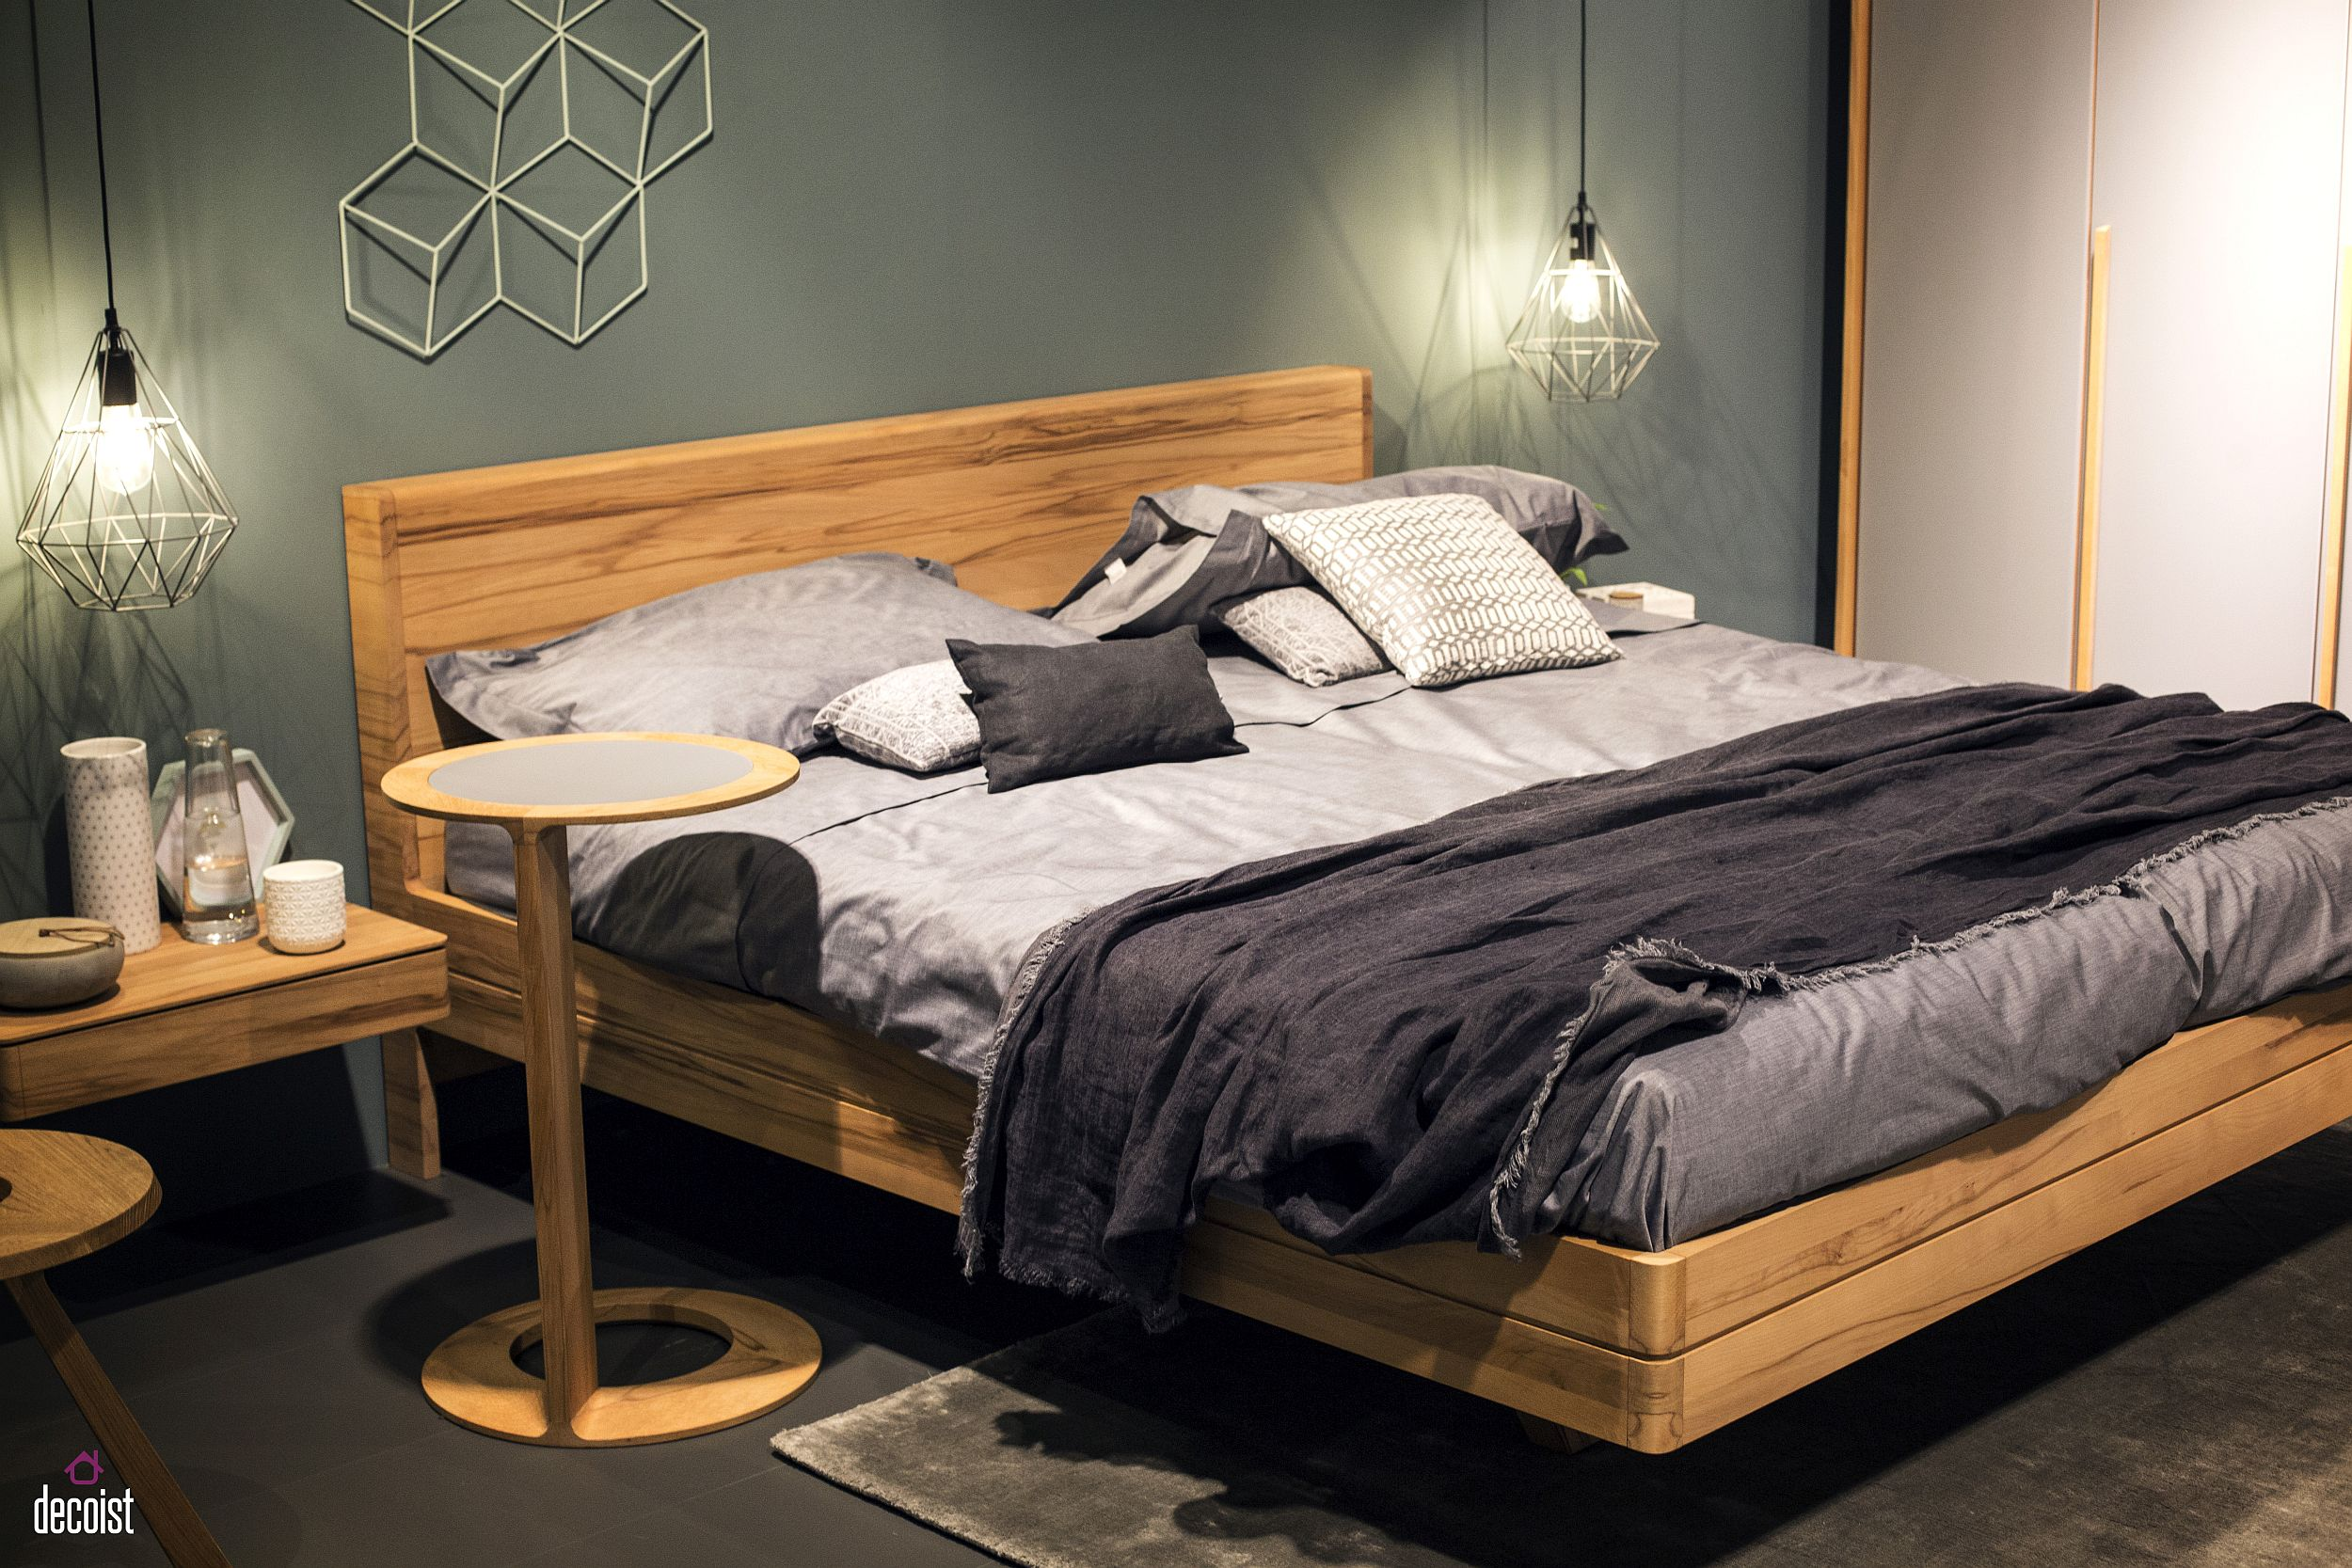 Dashing contemporary bedroom with geo style bedside pendants